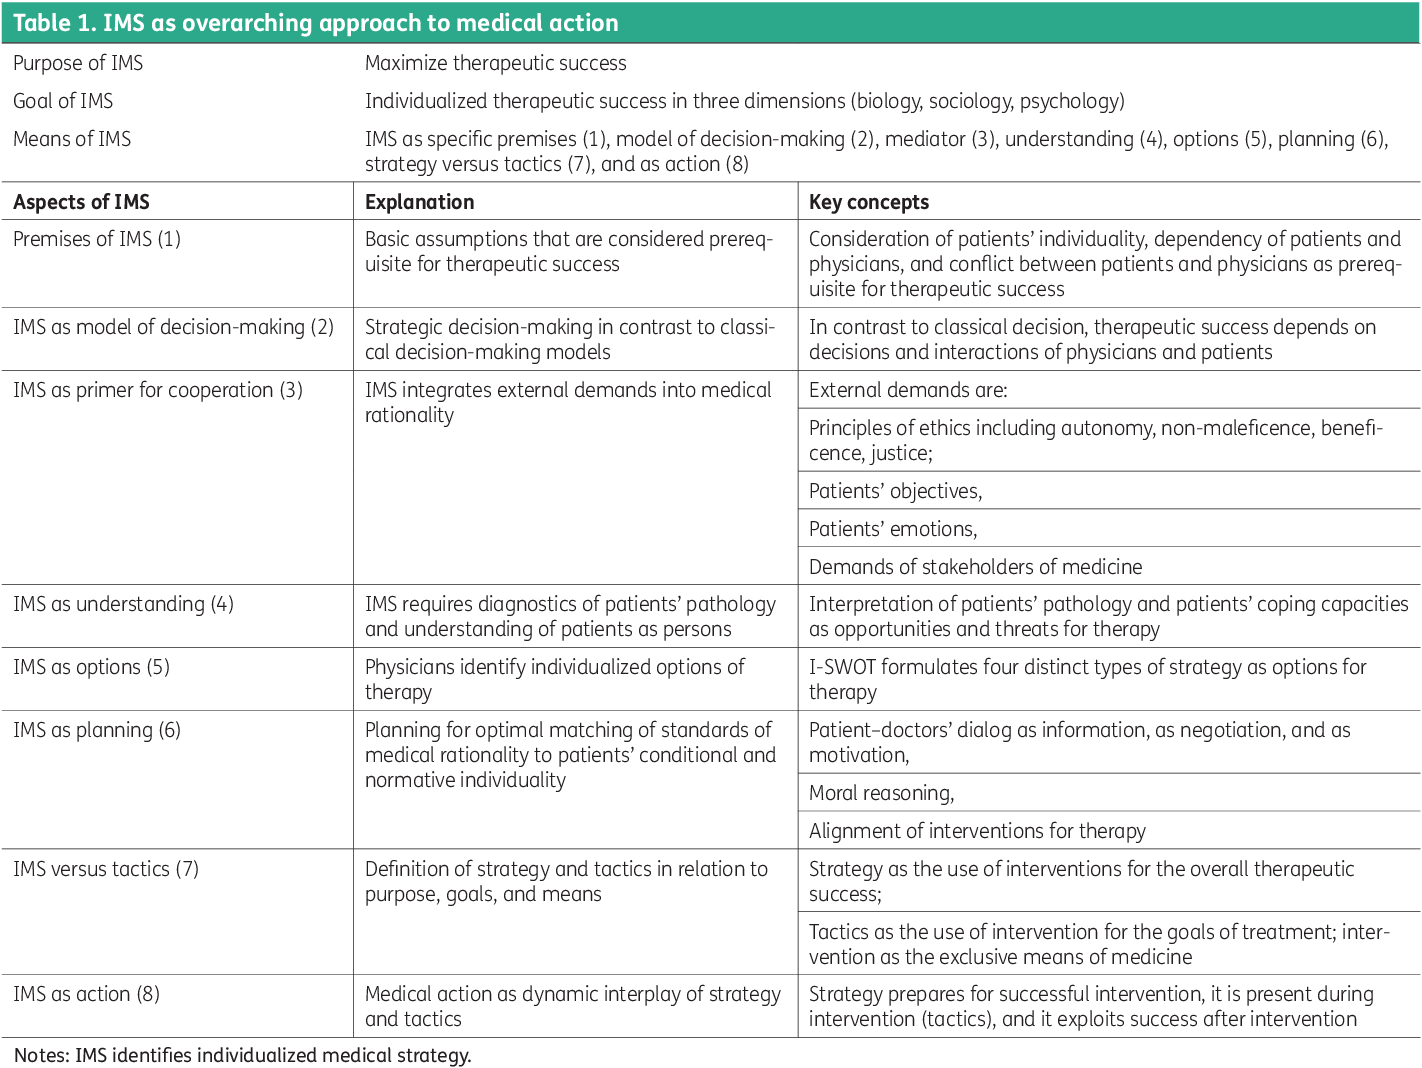 Table 1. IMS as overarching approach to medical action